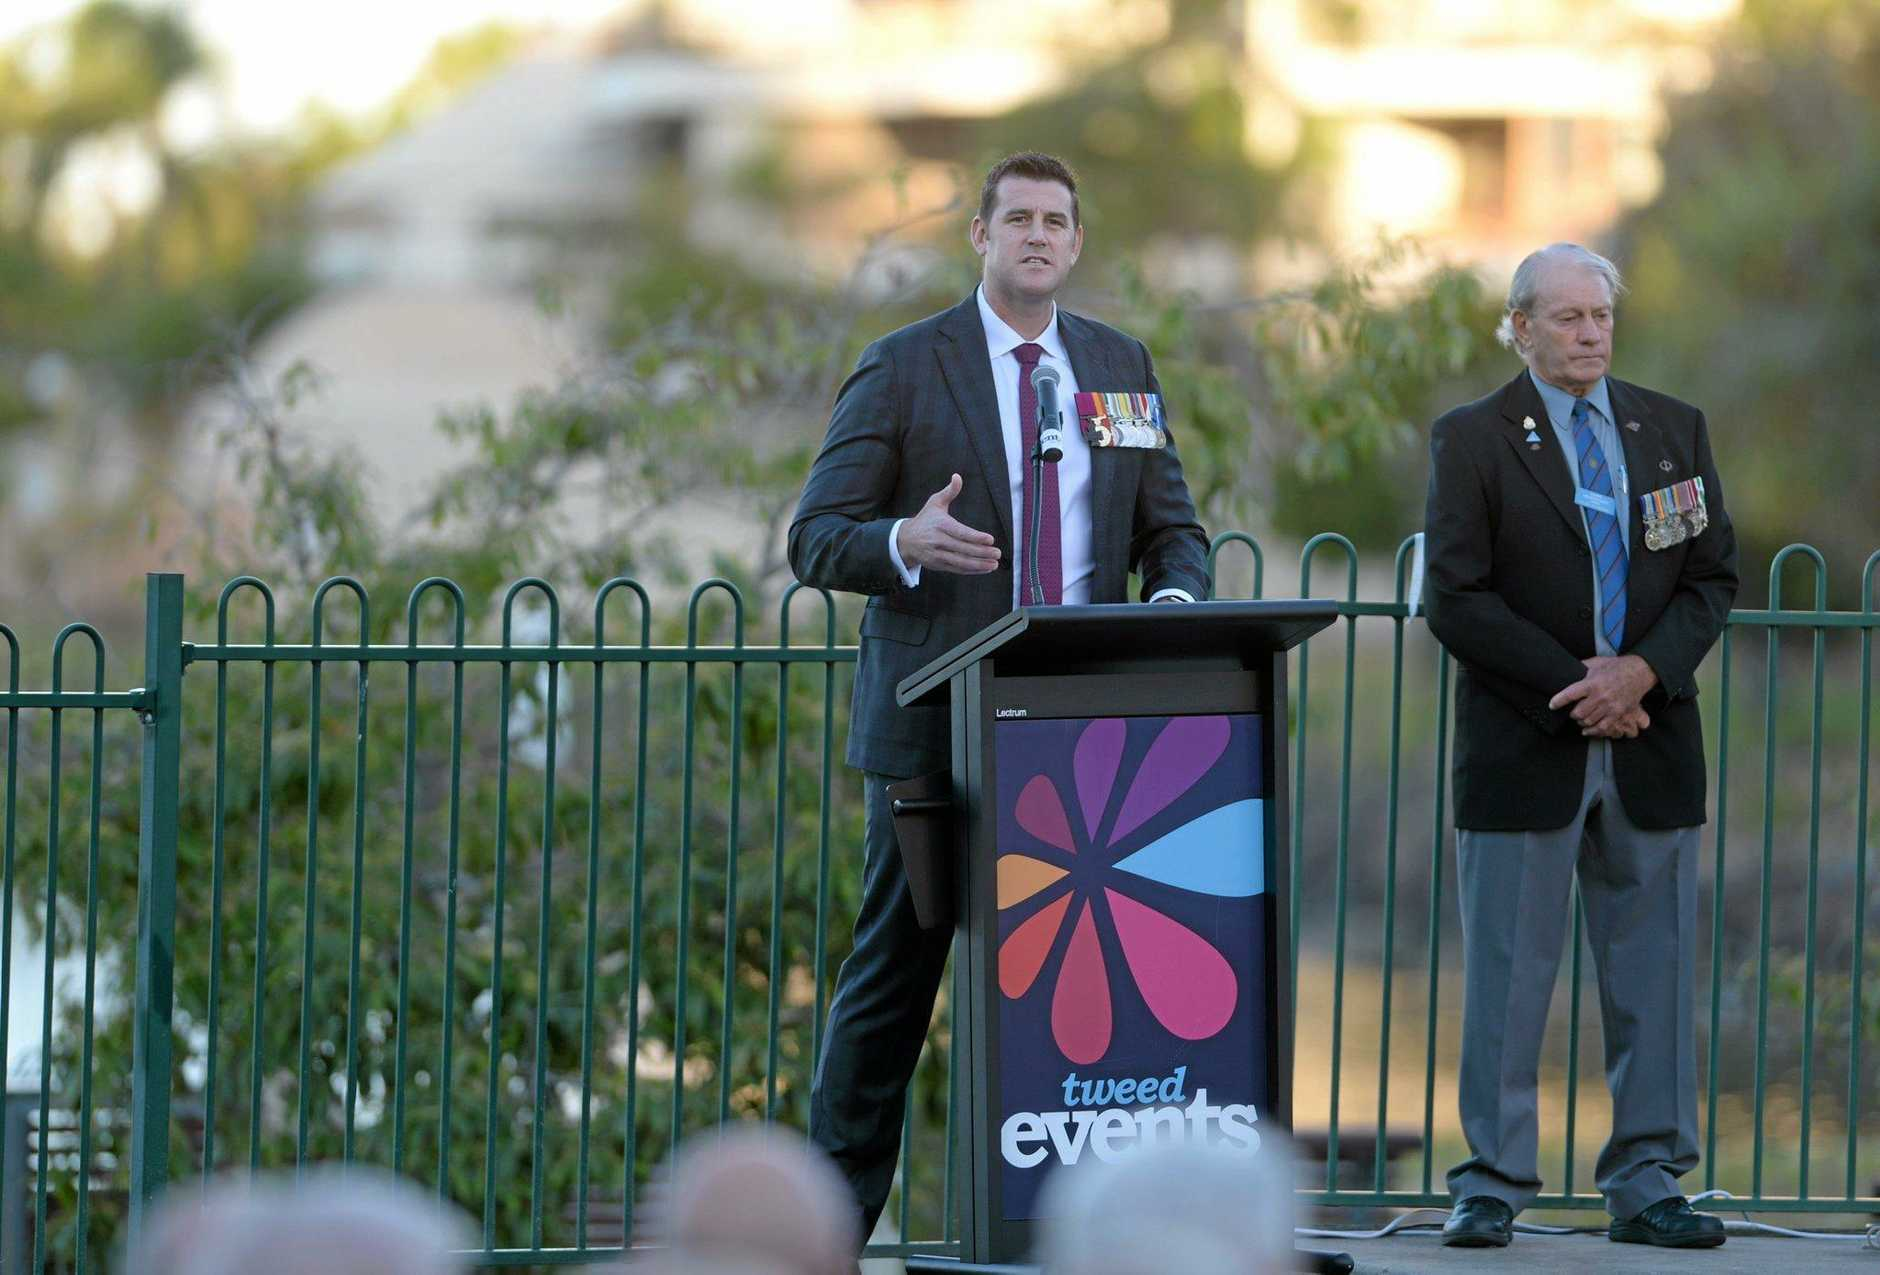 Victoria Cross recipient Ben Roberts-Smith, gives a speech at the commemorative service for the battle of Coral-Balmoral.